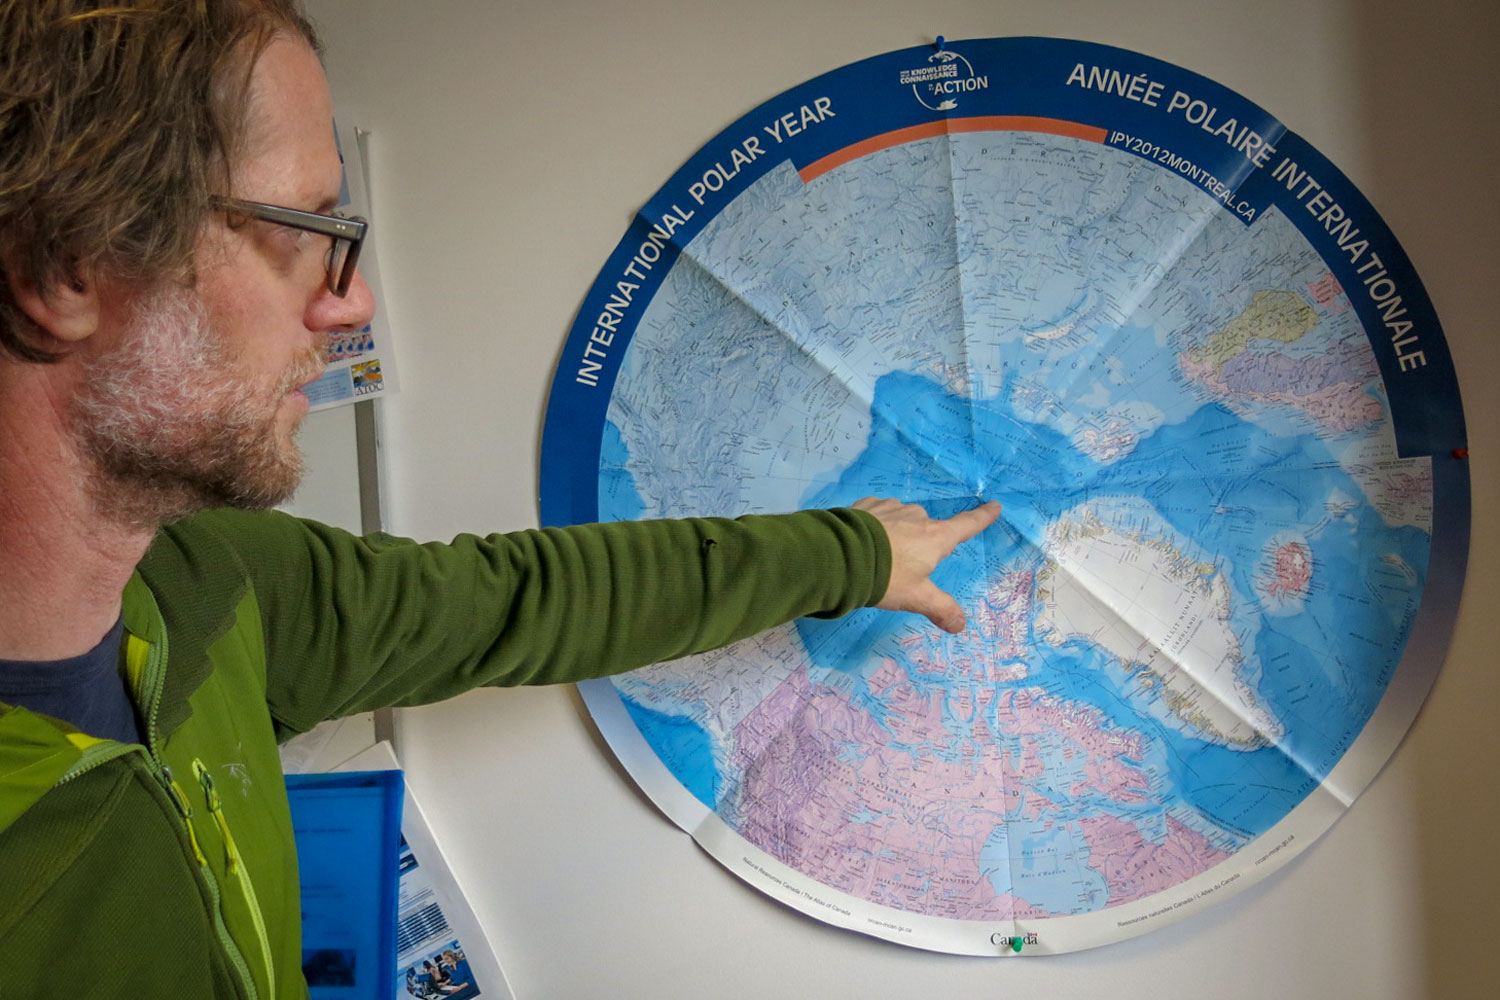 <p>Starting in September, research scientists will sail into the Arctic Ocean from Norway and find the best position for their ship during the winter. The goal is to drift roughly 7 kilometers per day, ending the trip in October 2020 near Greenland.</p>